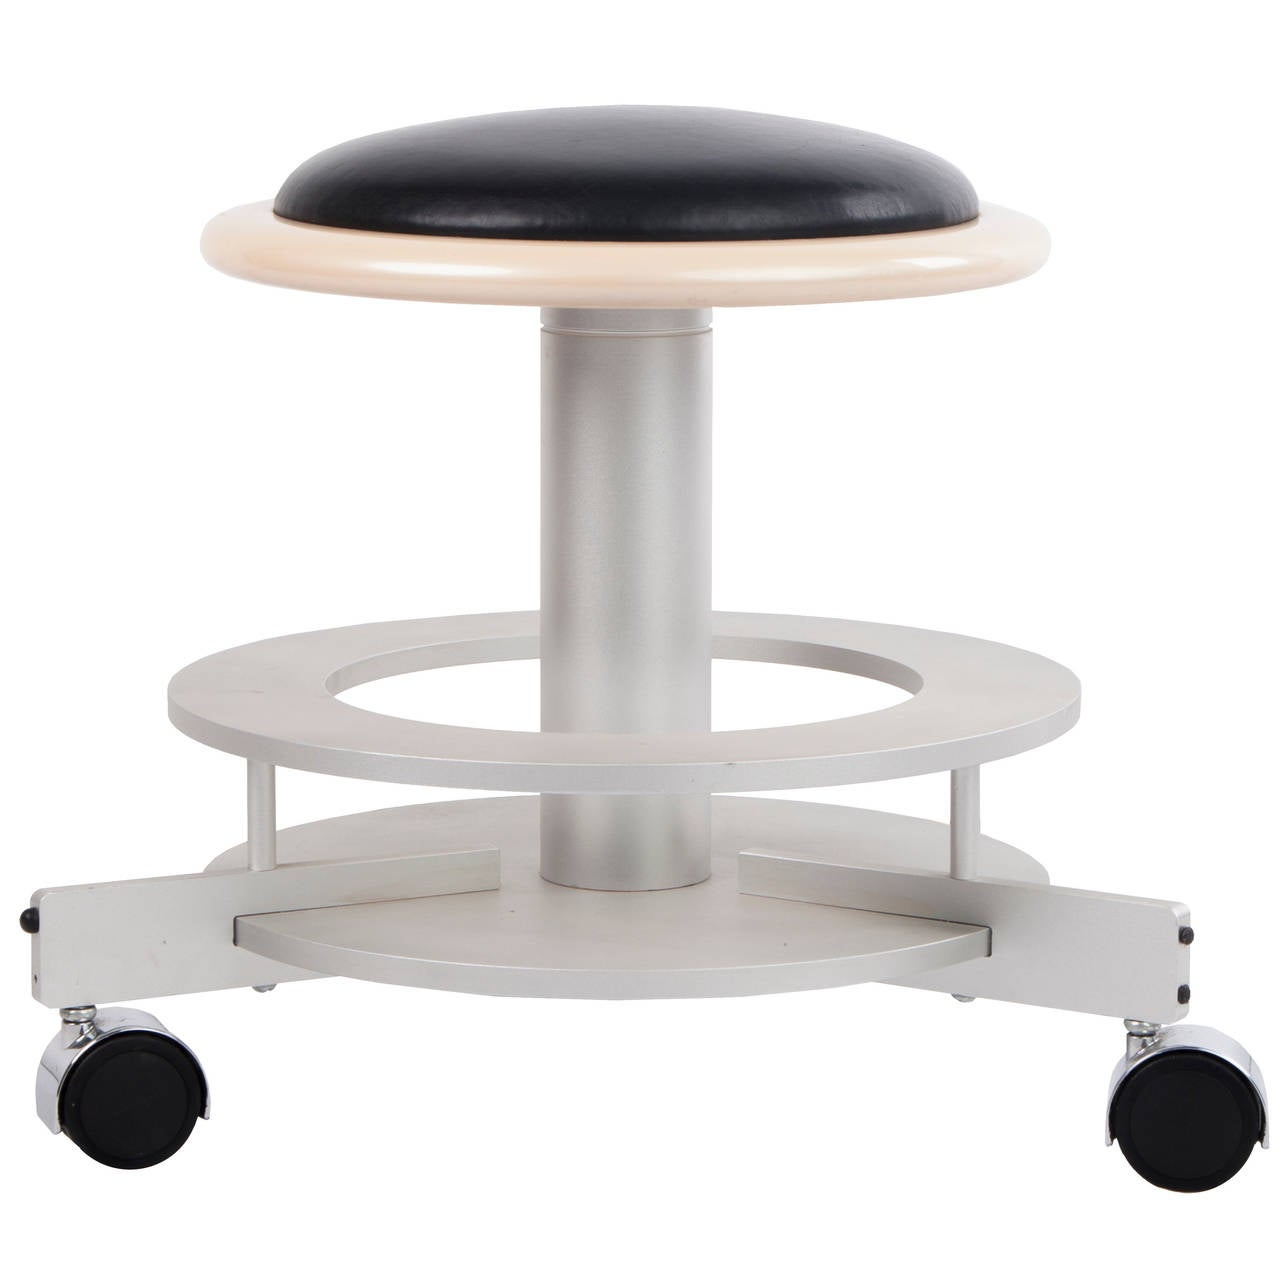 Round Mid Century Modern Leather Stool On Casters At 1stdibs